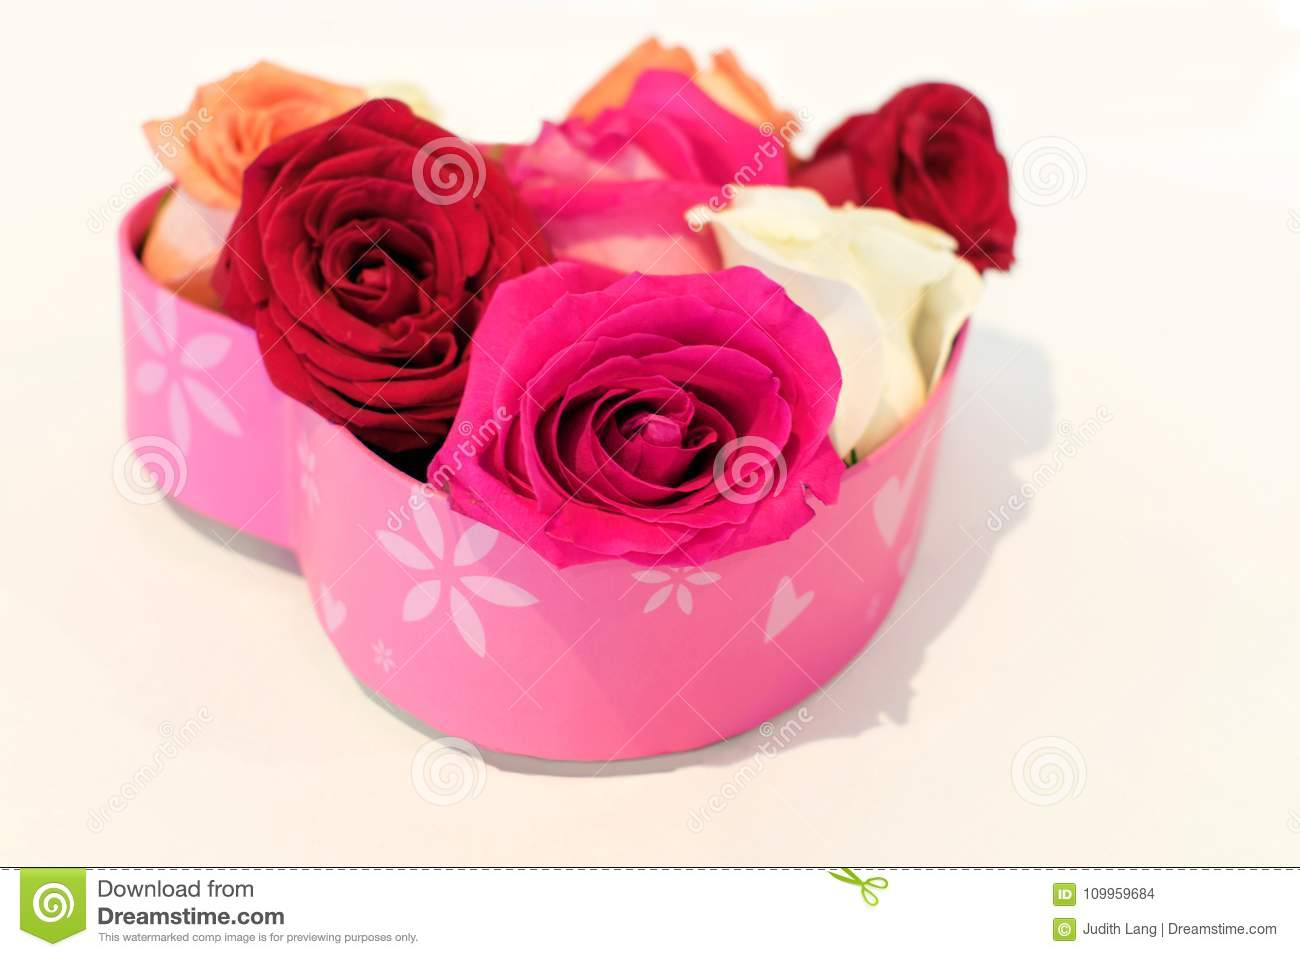 Rose blossoms in heart shaped pink box on white